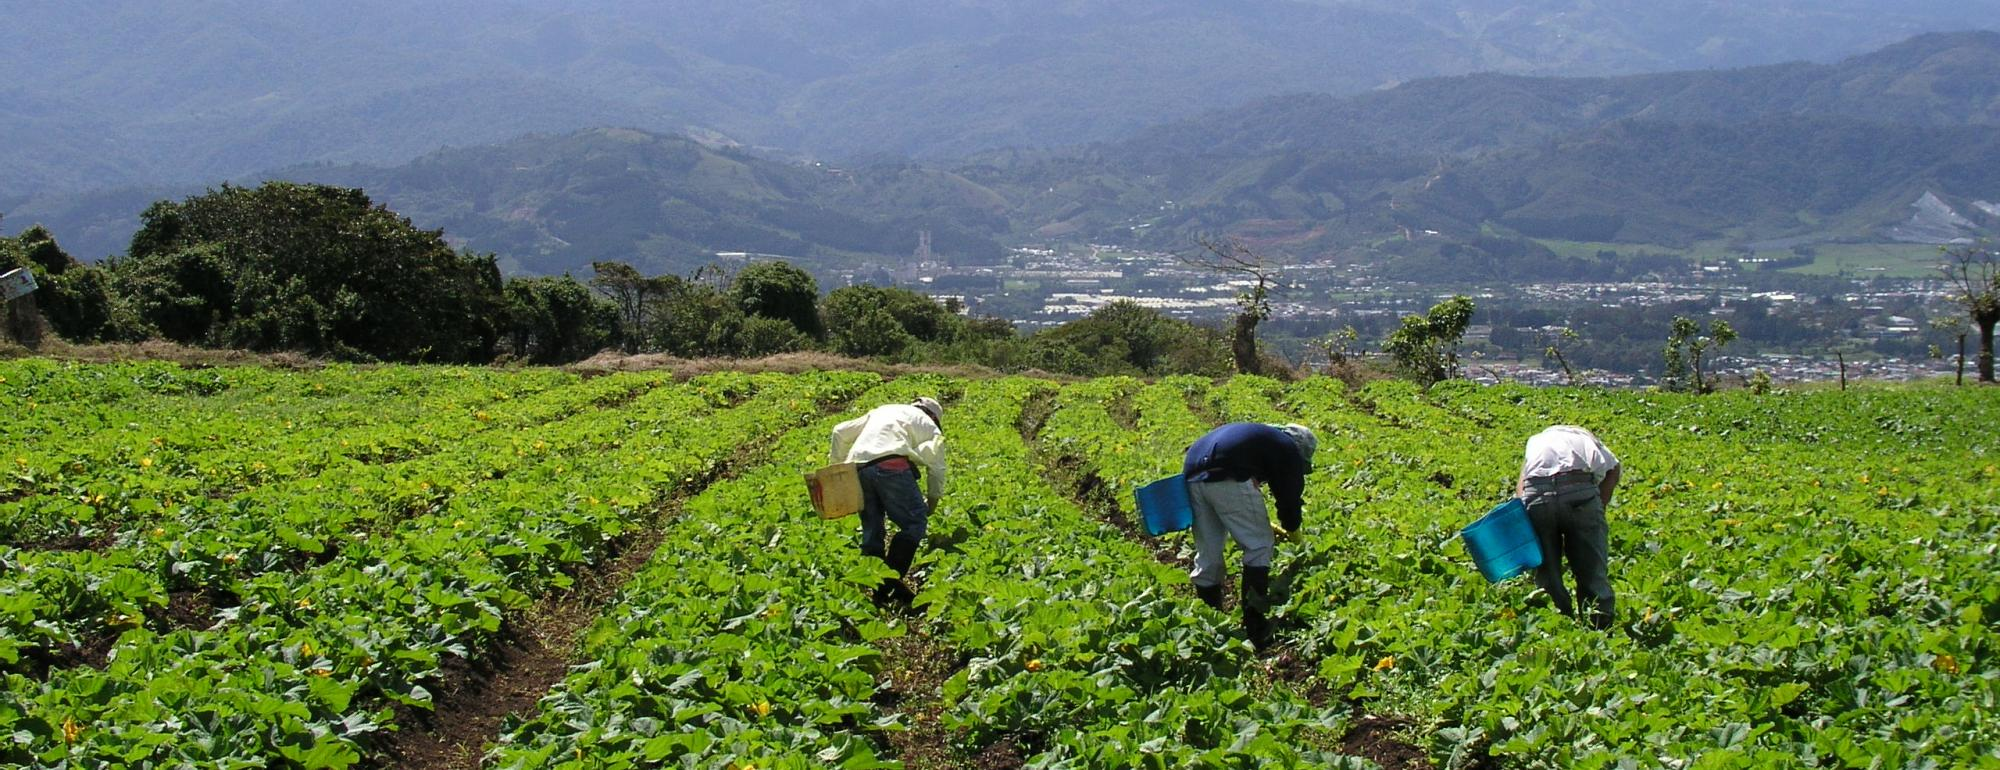 Farmworkers harvesting summer squash in Costa Rica